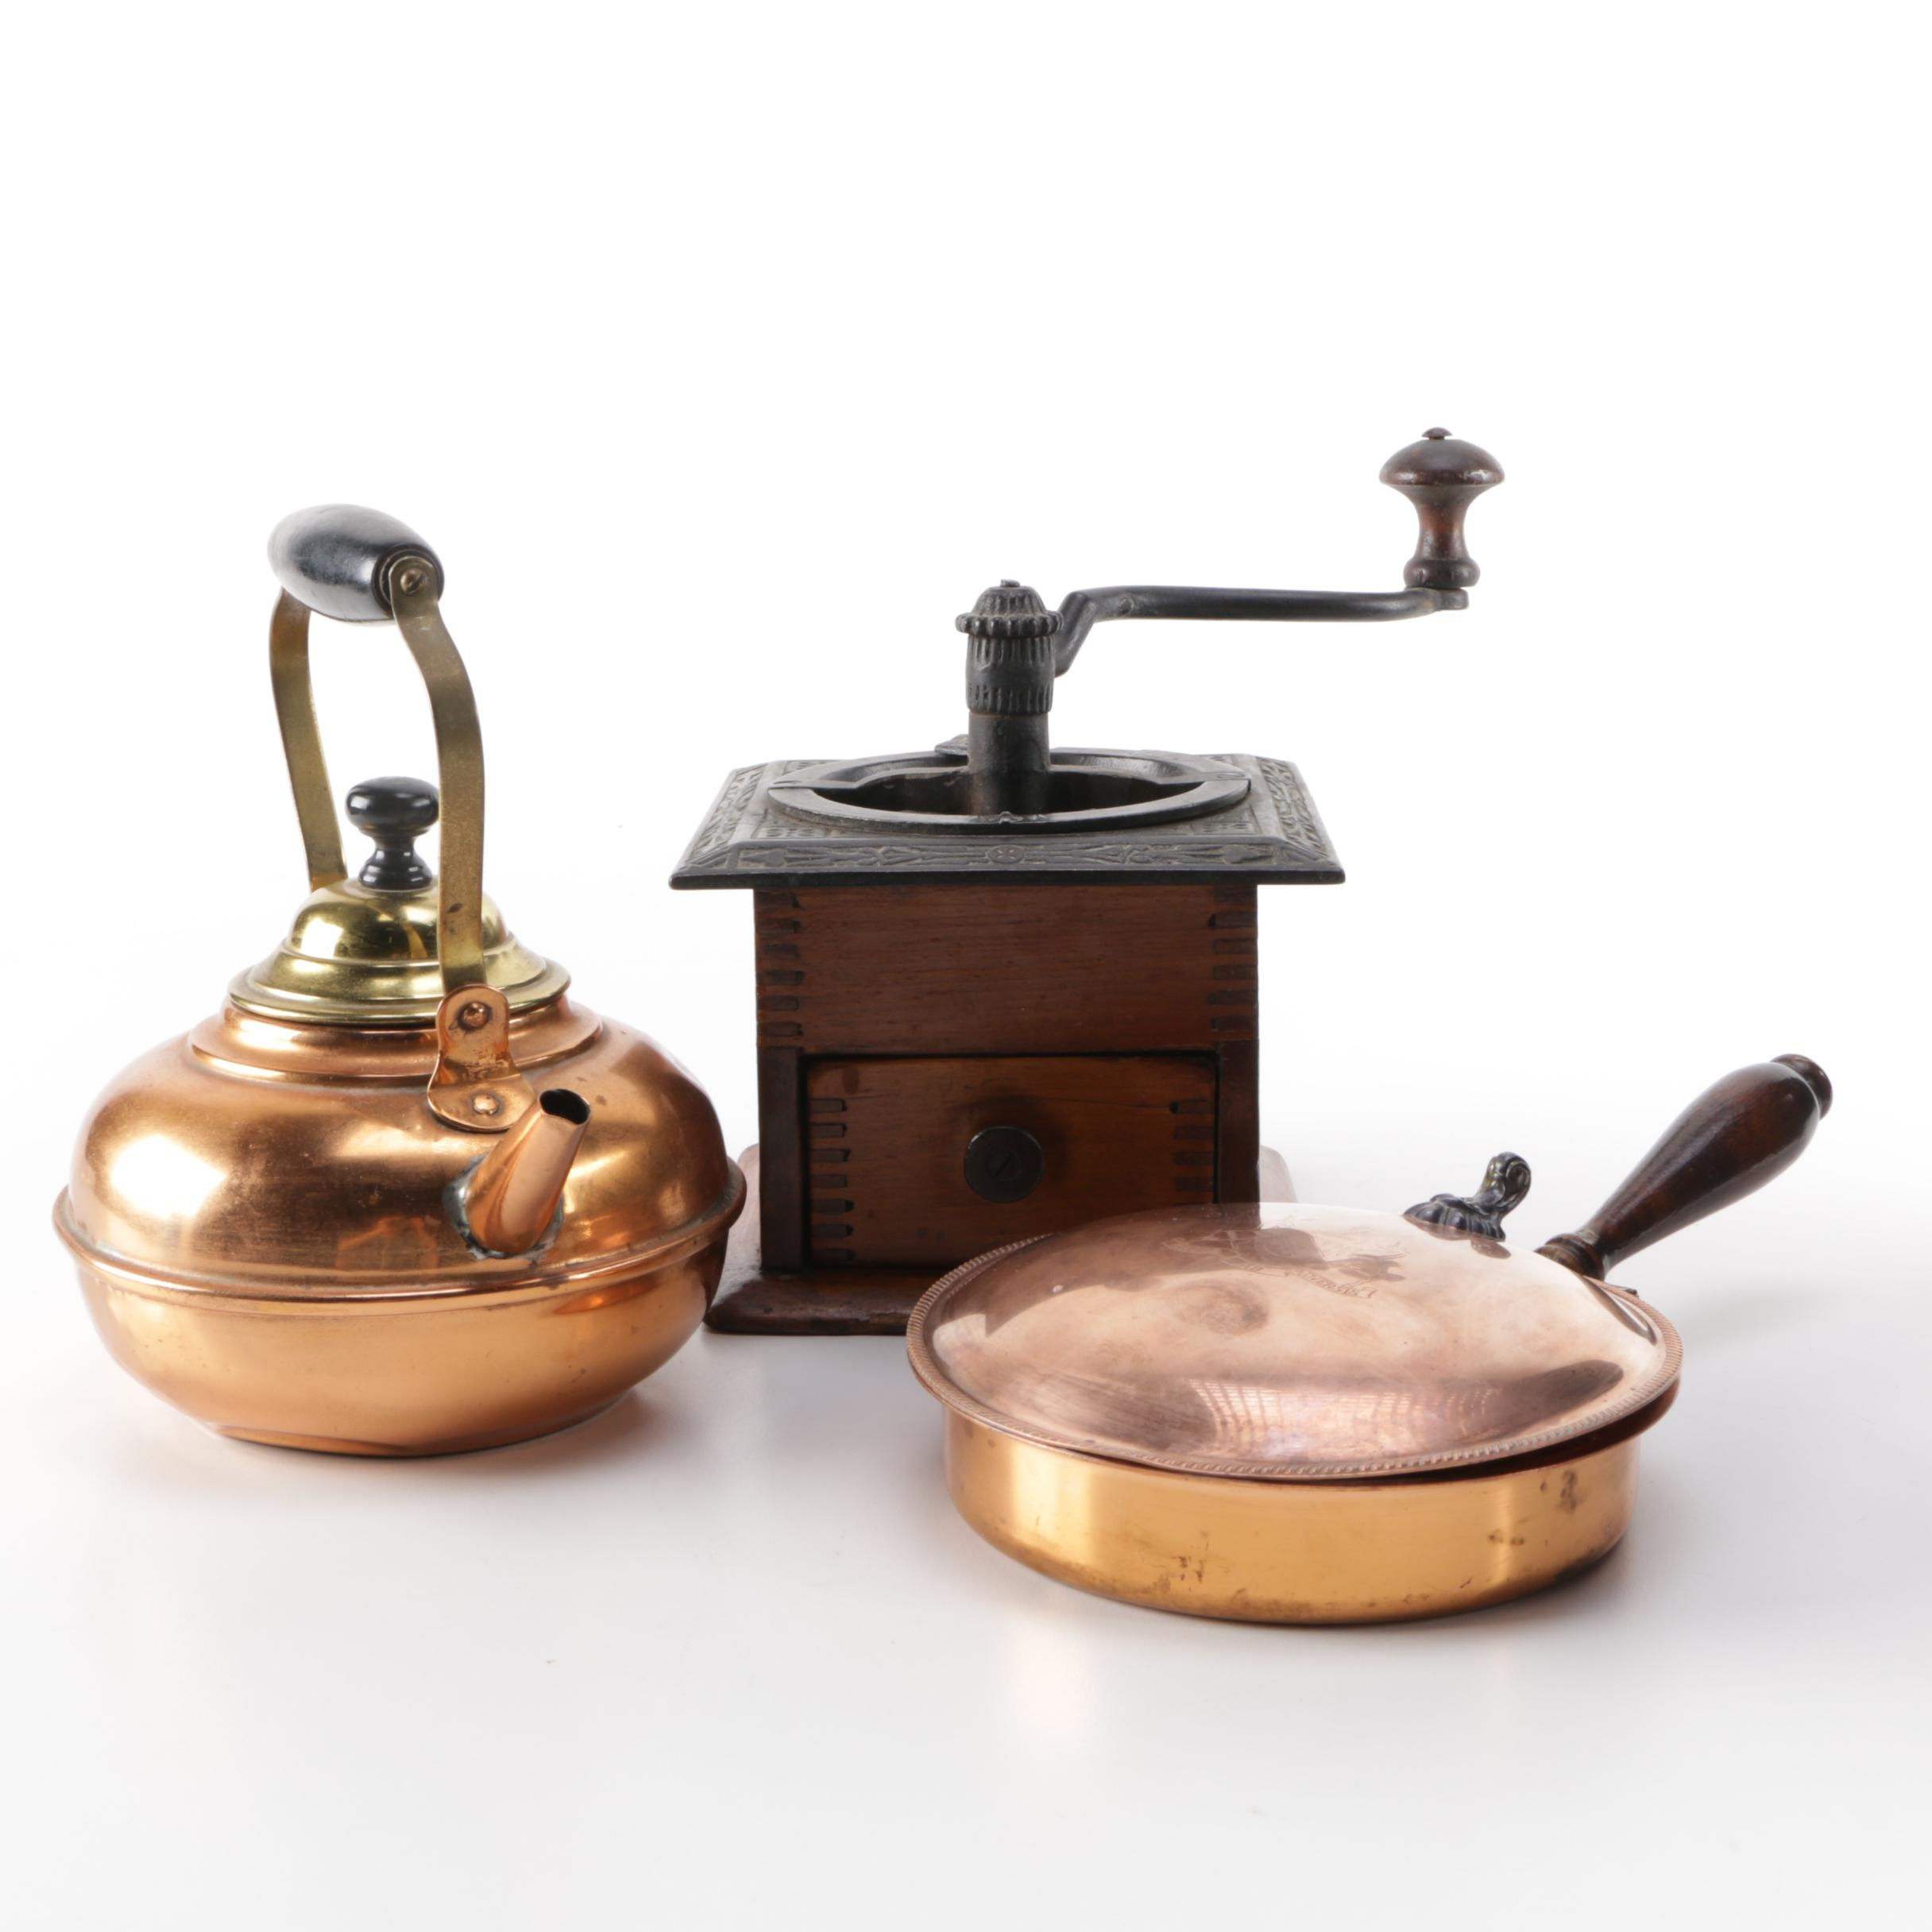 Vintage to Antique Kitchen Kettle, Bed Warmer, and Coffee Grinder